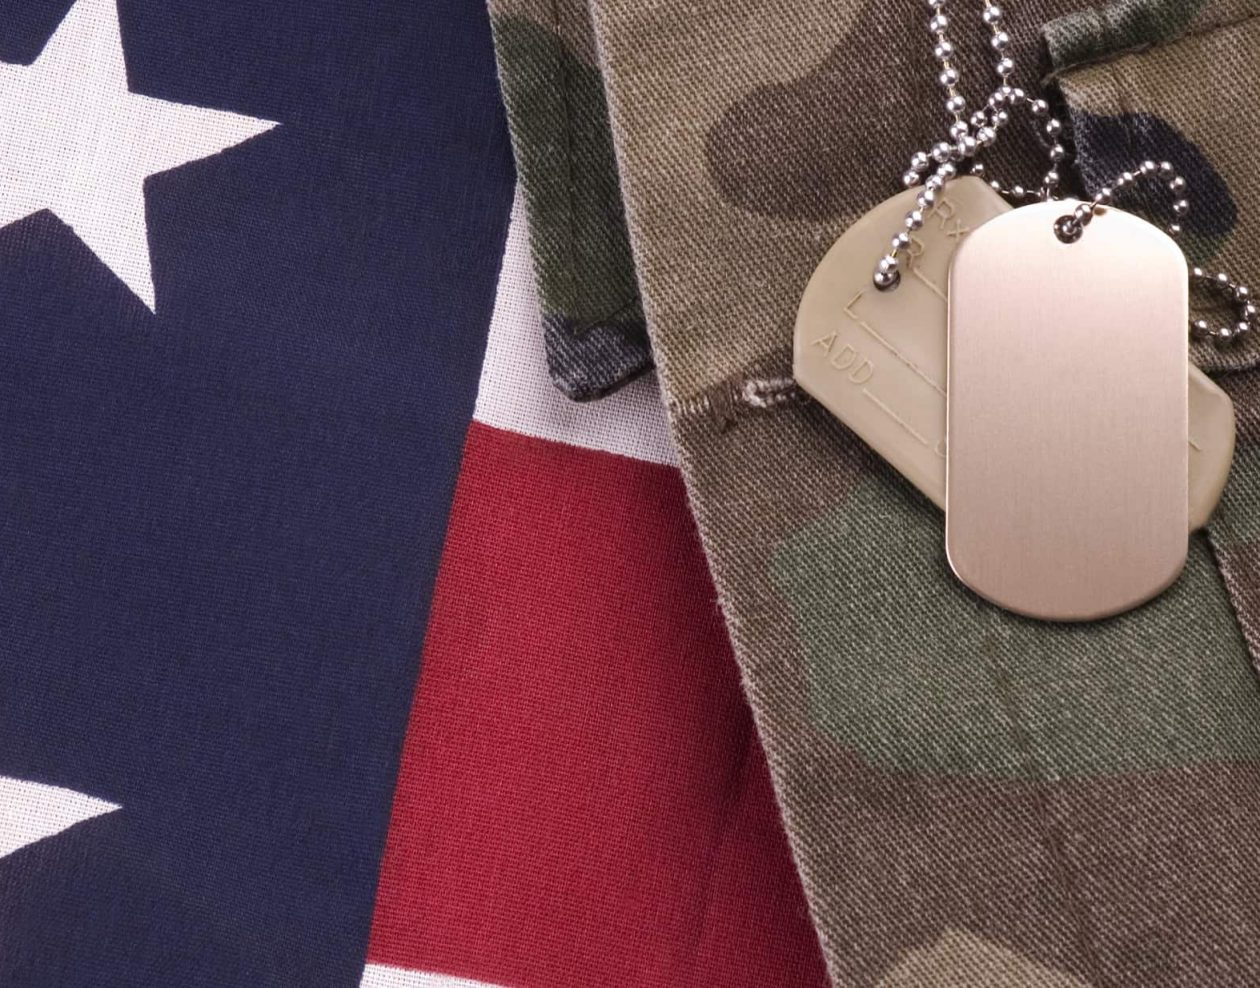 American flag, military uniform and dog tags